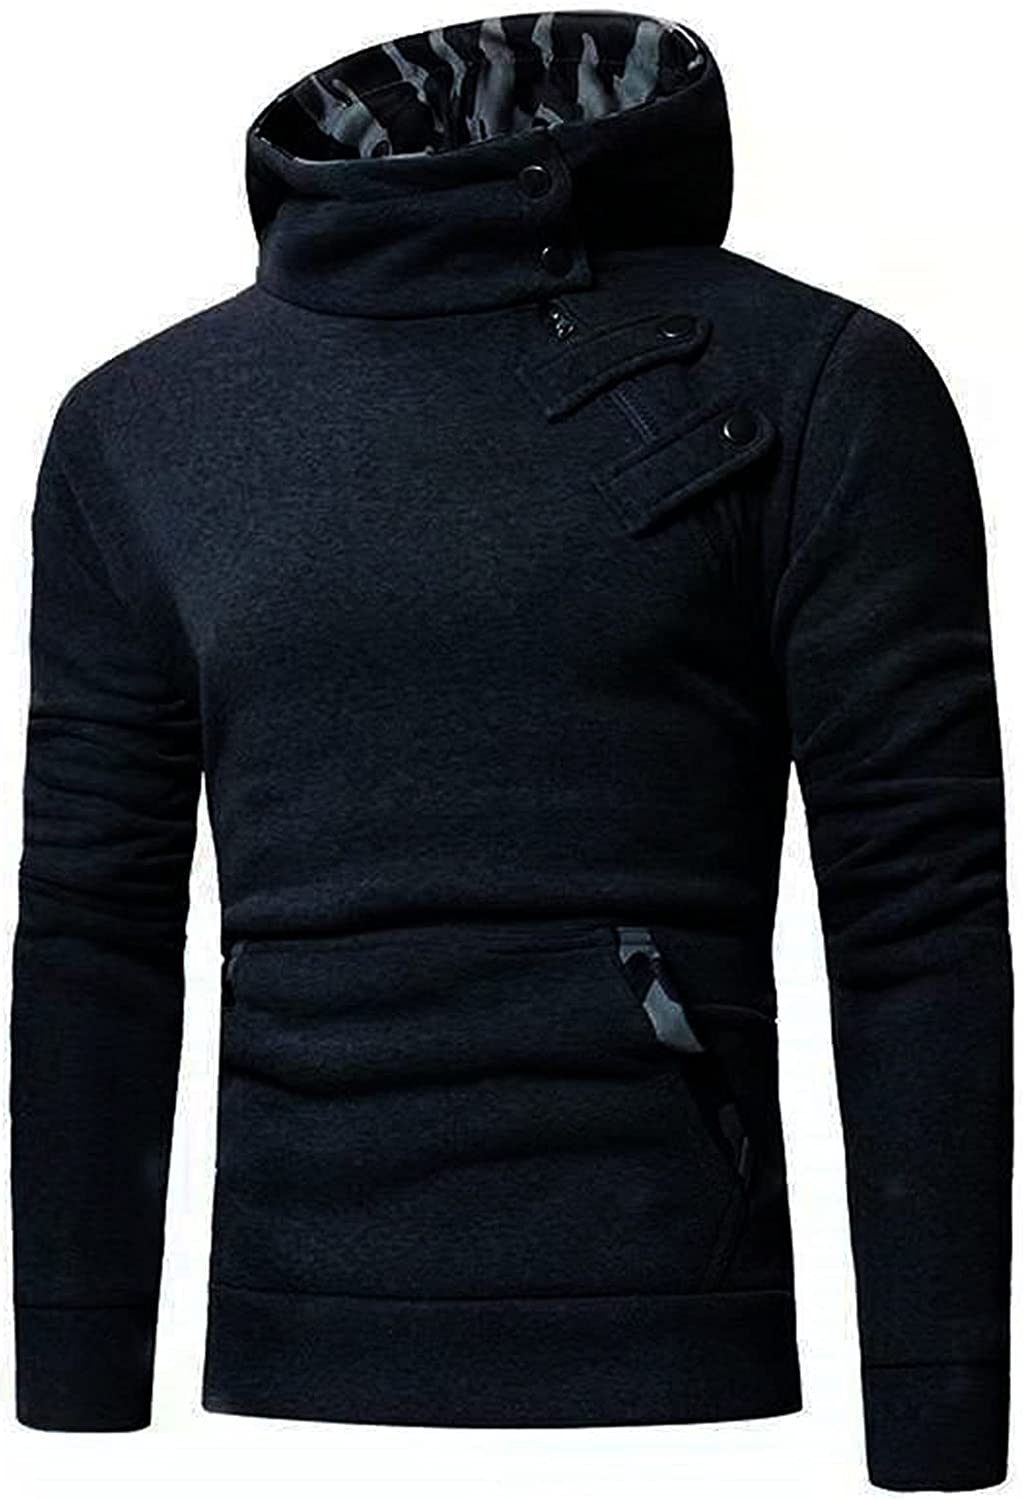 Hoodies for Men Casual Long Sleeve Sweater Camouflage Stitching Button Hooded Sweatshirt Top Blouse with Pocket